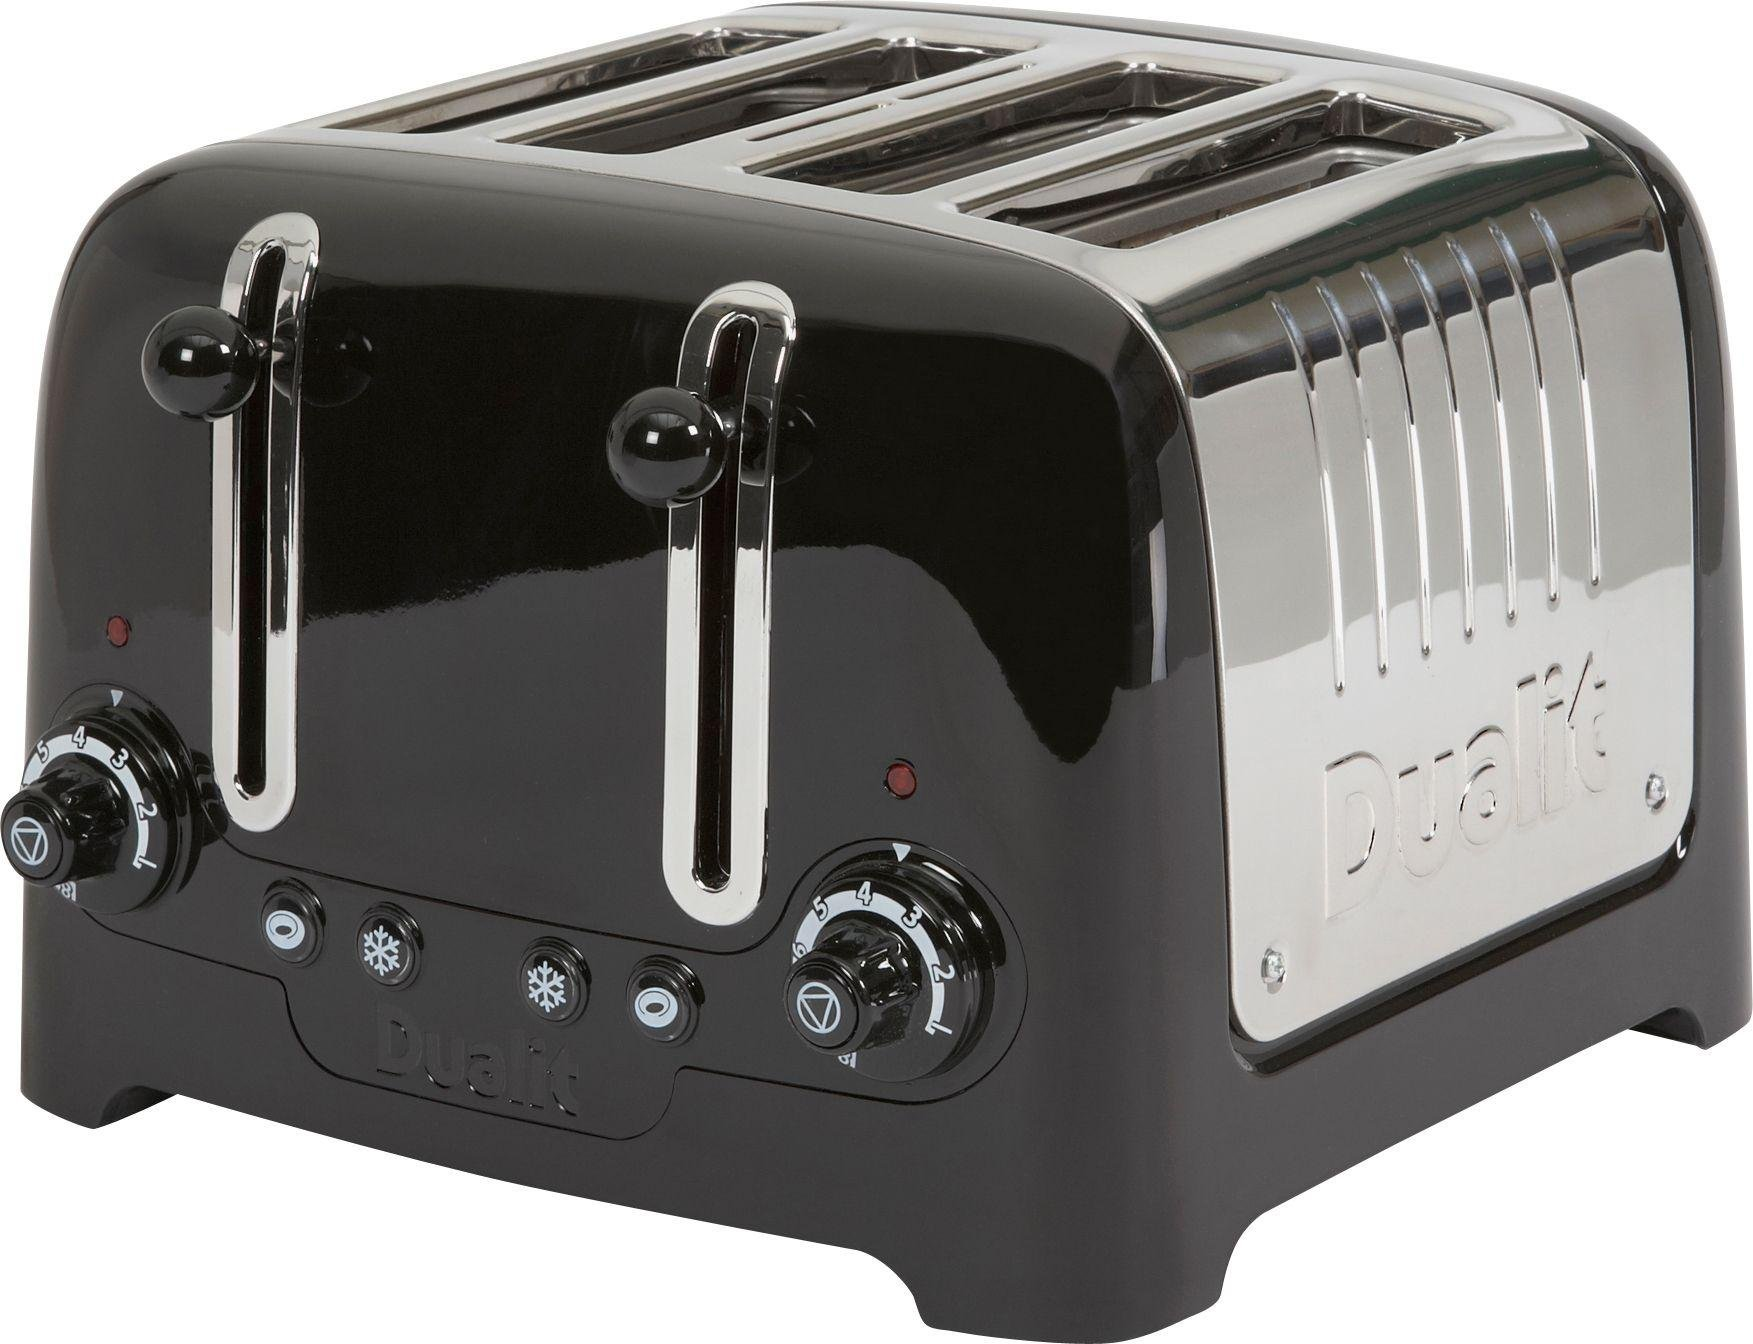 Image of Dualit DPP4 4 Slice Lite Toaster - Black